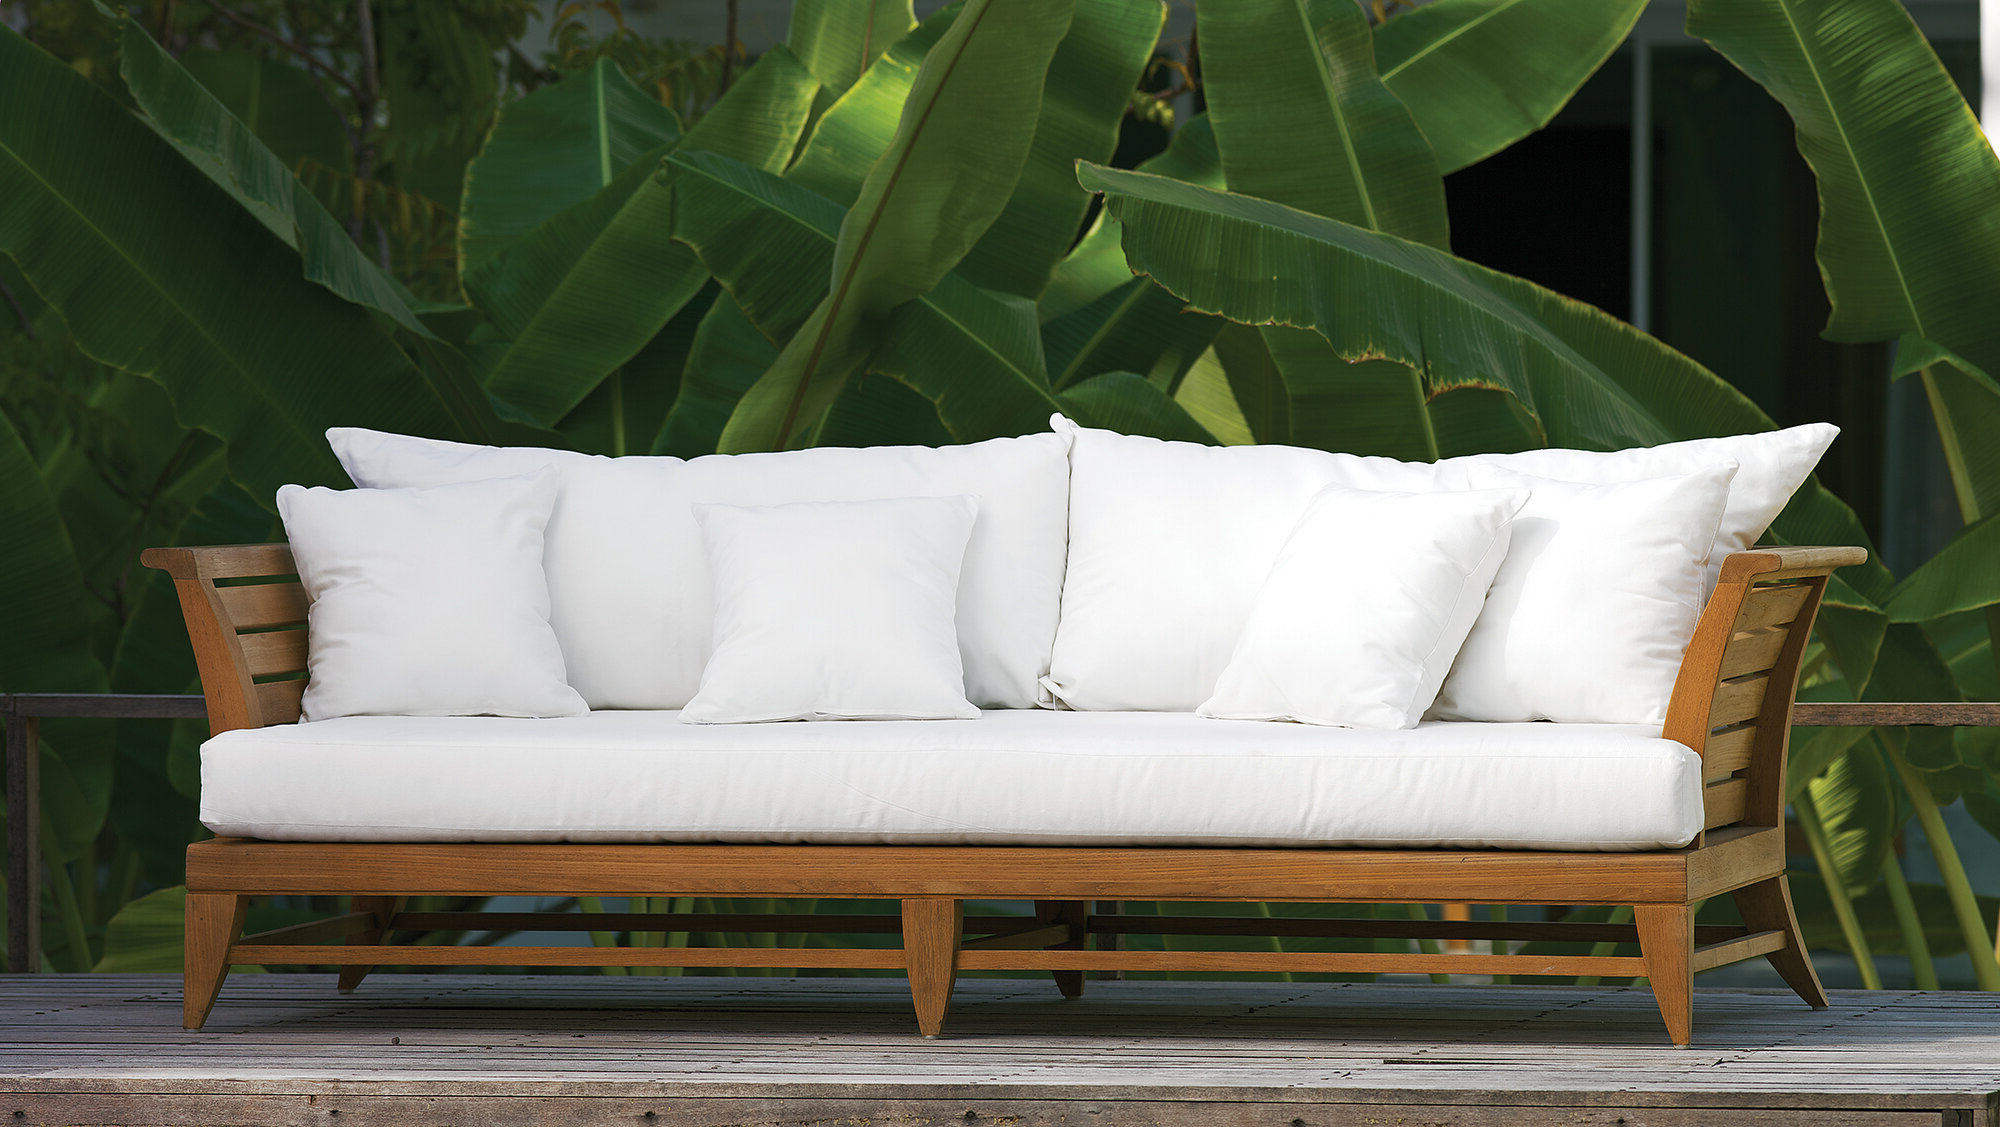 Teak Patio Daybed Within Most Up To Date Ellanti Teak Patio Daybeds With Cushions (View 18 of 20)